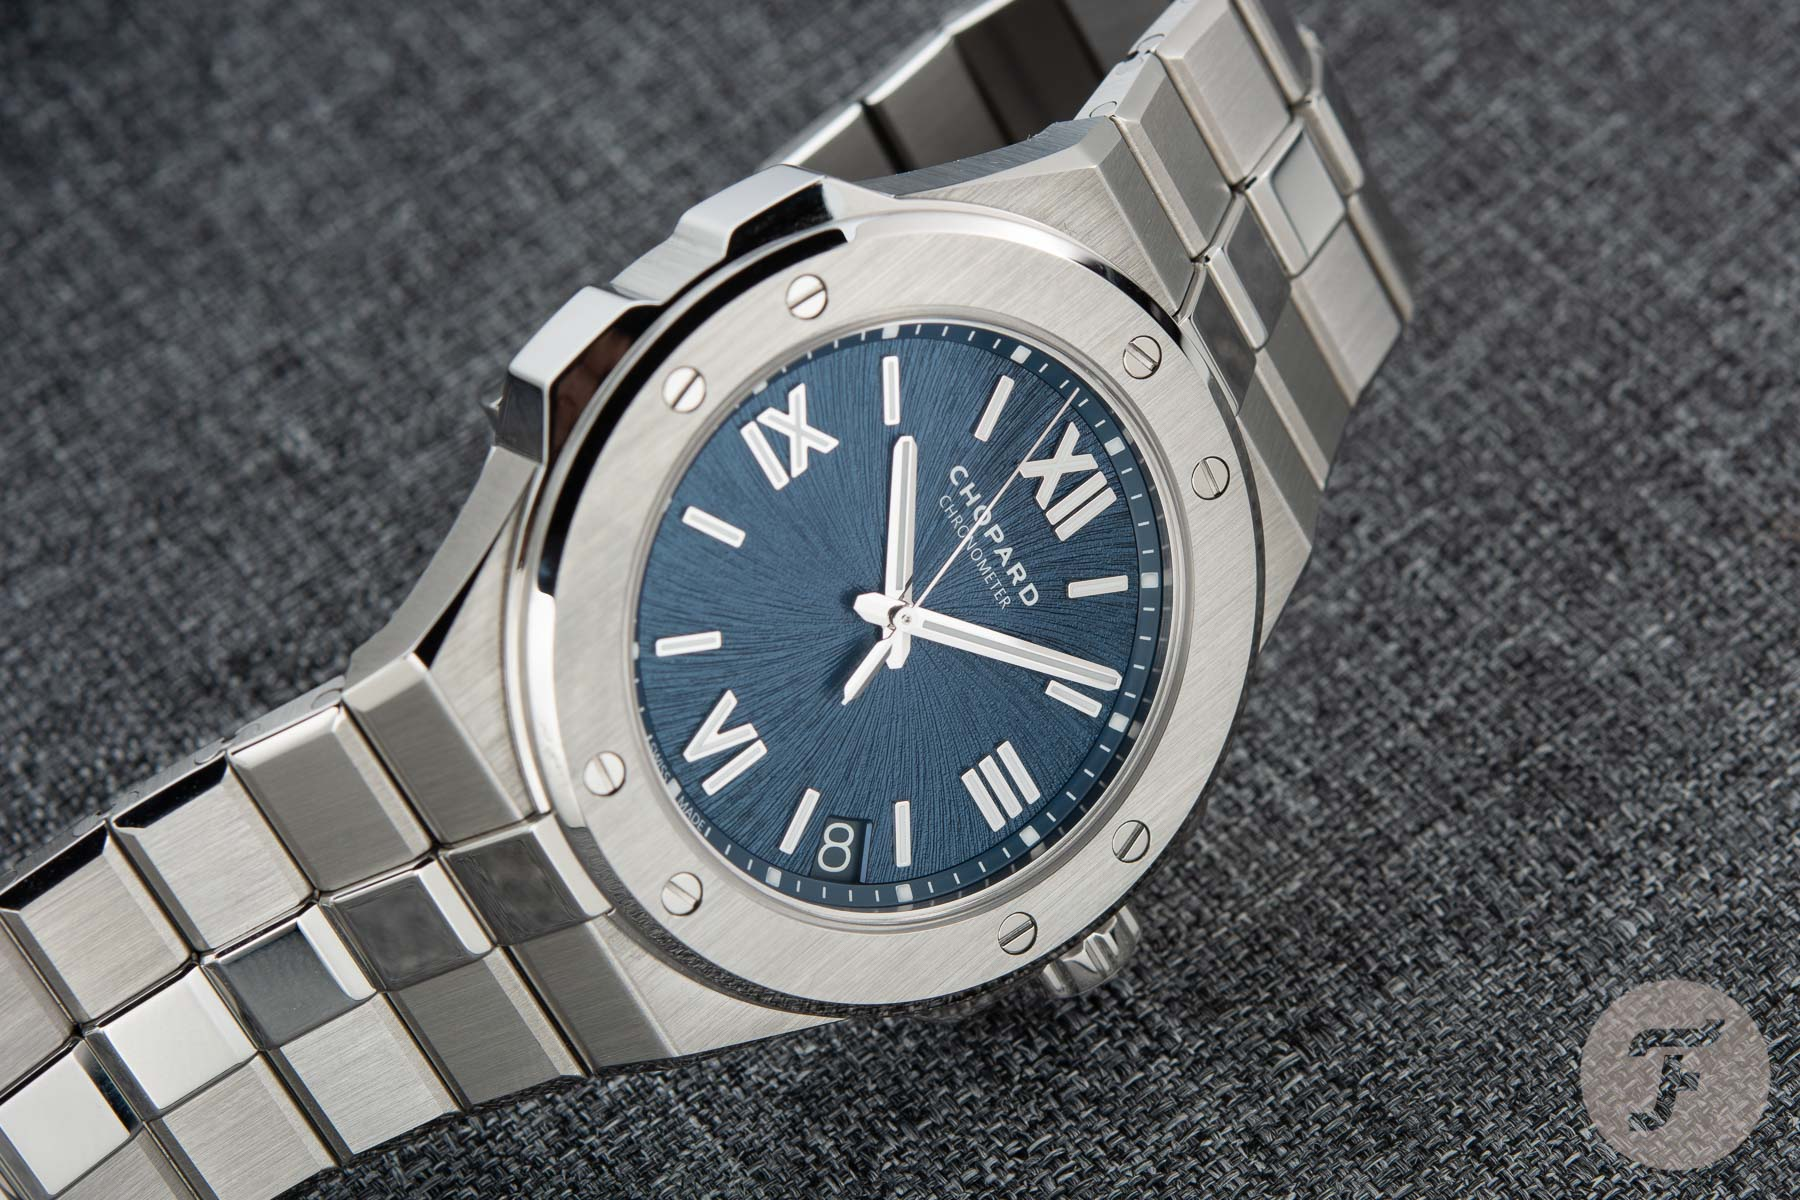 Shadow Warriors: A Battalion Of List Price Luxury Sports Watches Too Often Overlooked